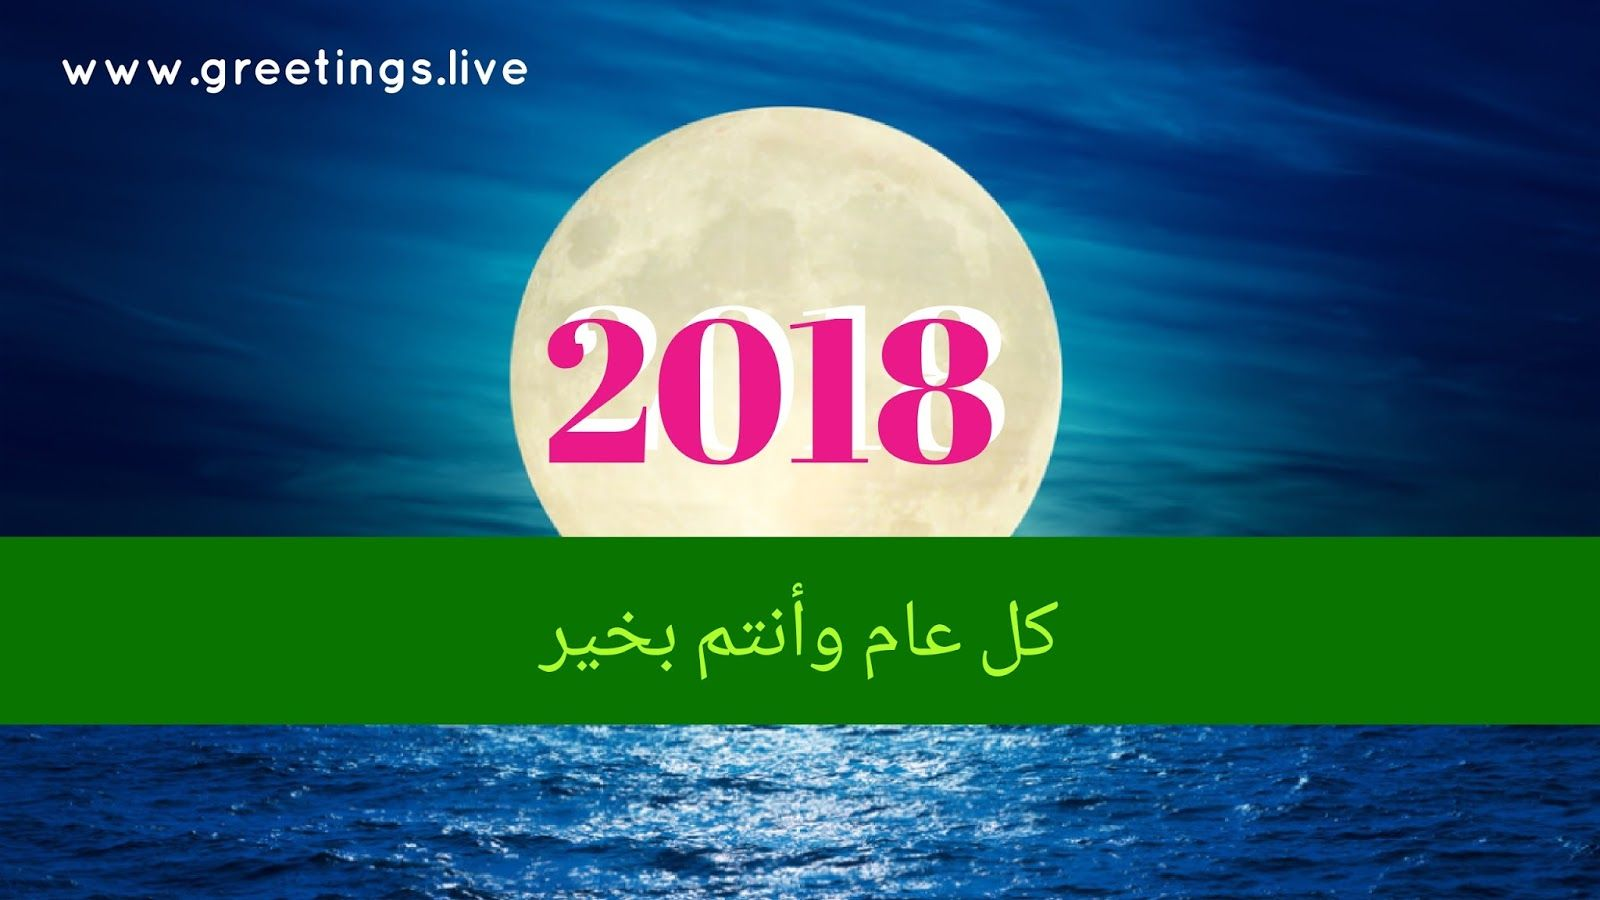 New year wishes 2018 in arabic language greetings live pinterest big moon light happy new year 2018 greetings in arabic language m4hsunfo